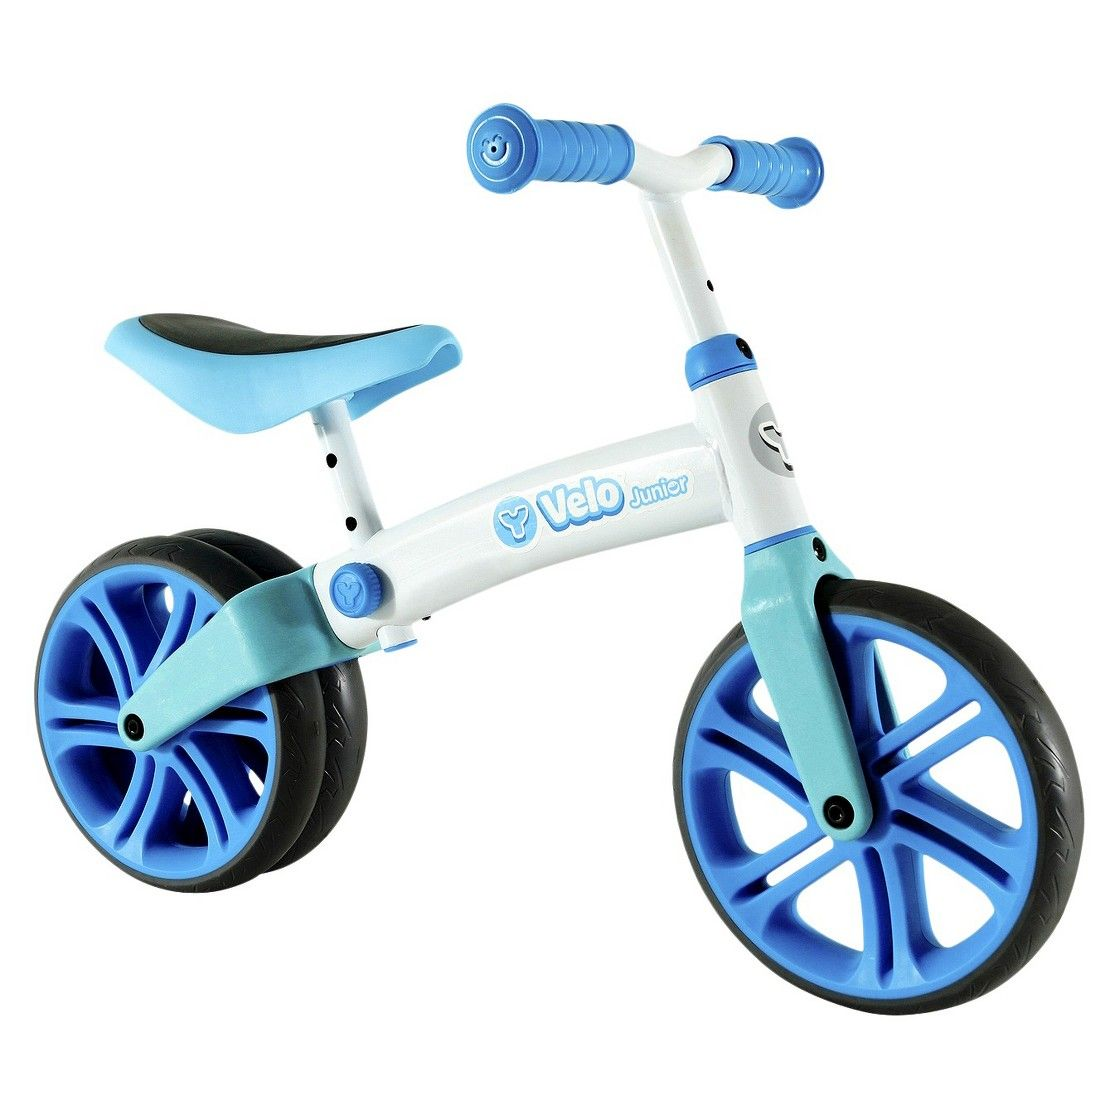 Yvolution Y Velo Junior Balance Bike Issy Is So Getting This For